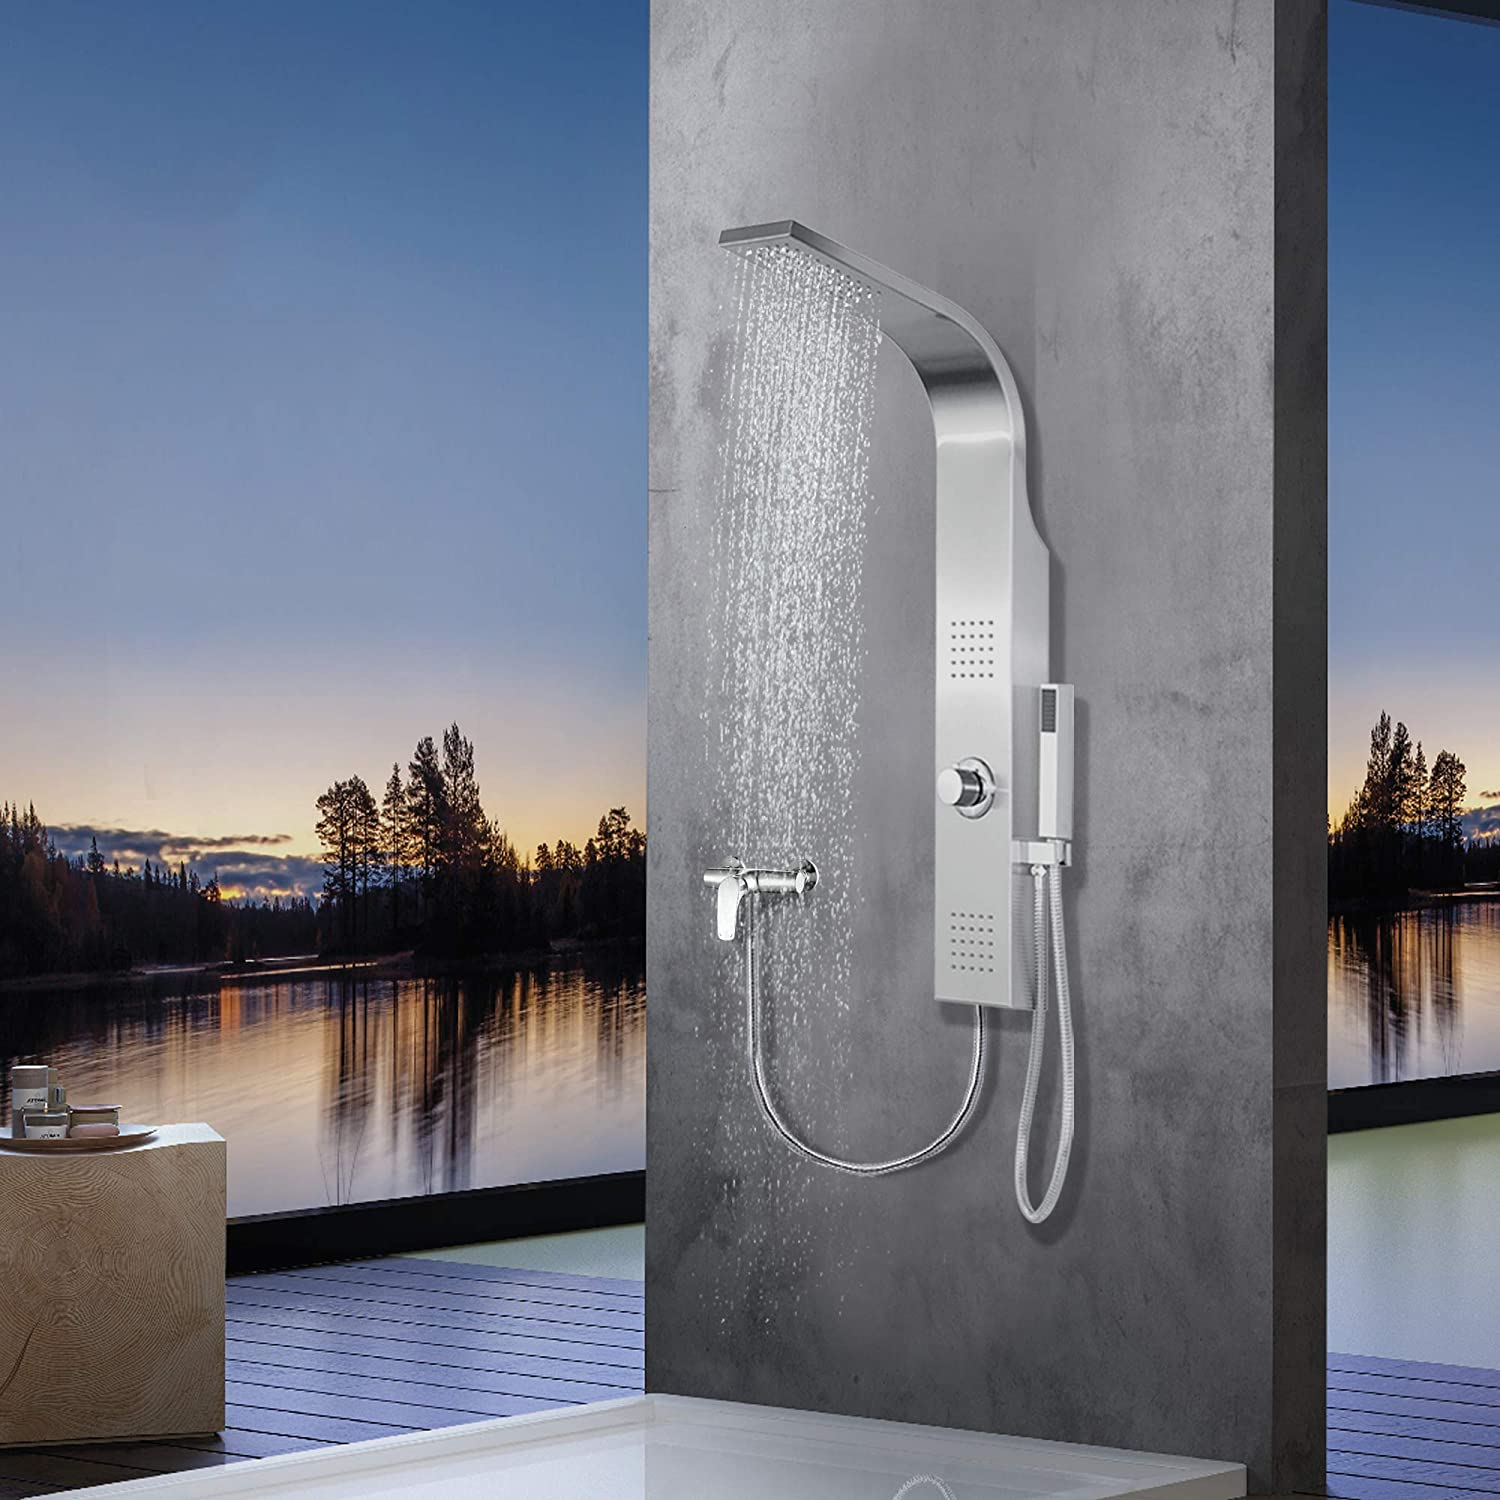 Elbe Shower Tower Panel Column Without Thermostat/Faucet, Mixer Shower Made of Stainless Steel 304, with 2 x hydromassage, 100 x 14 x 7 cm Mini-Design